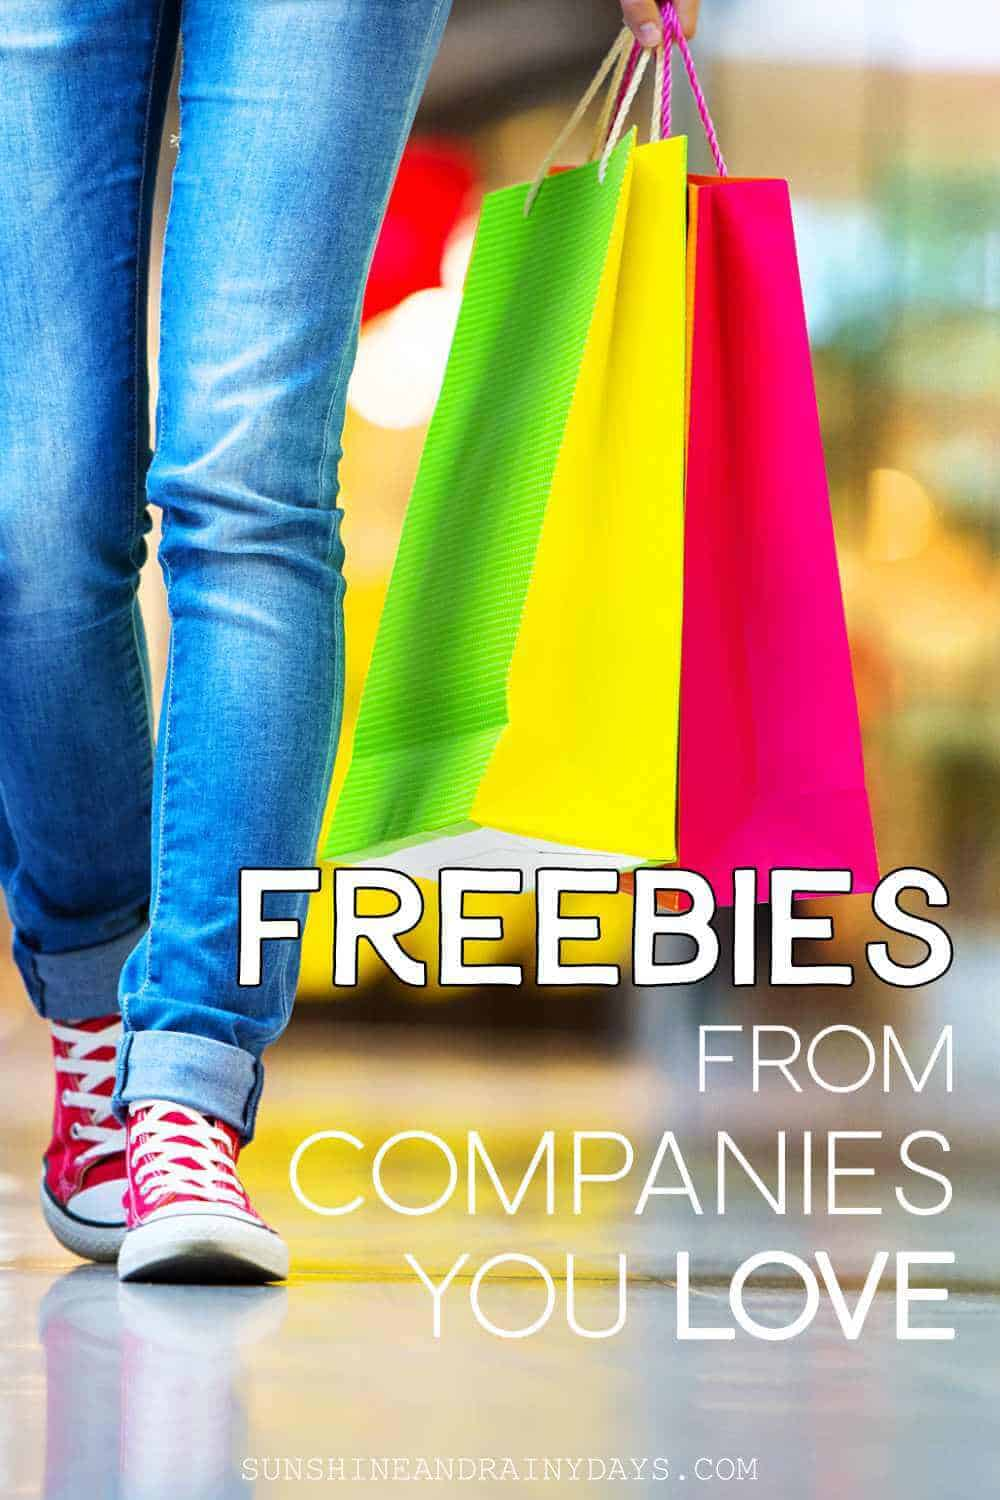 Freebies from companies you love!